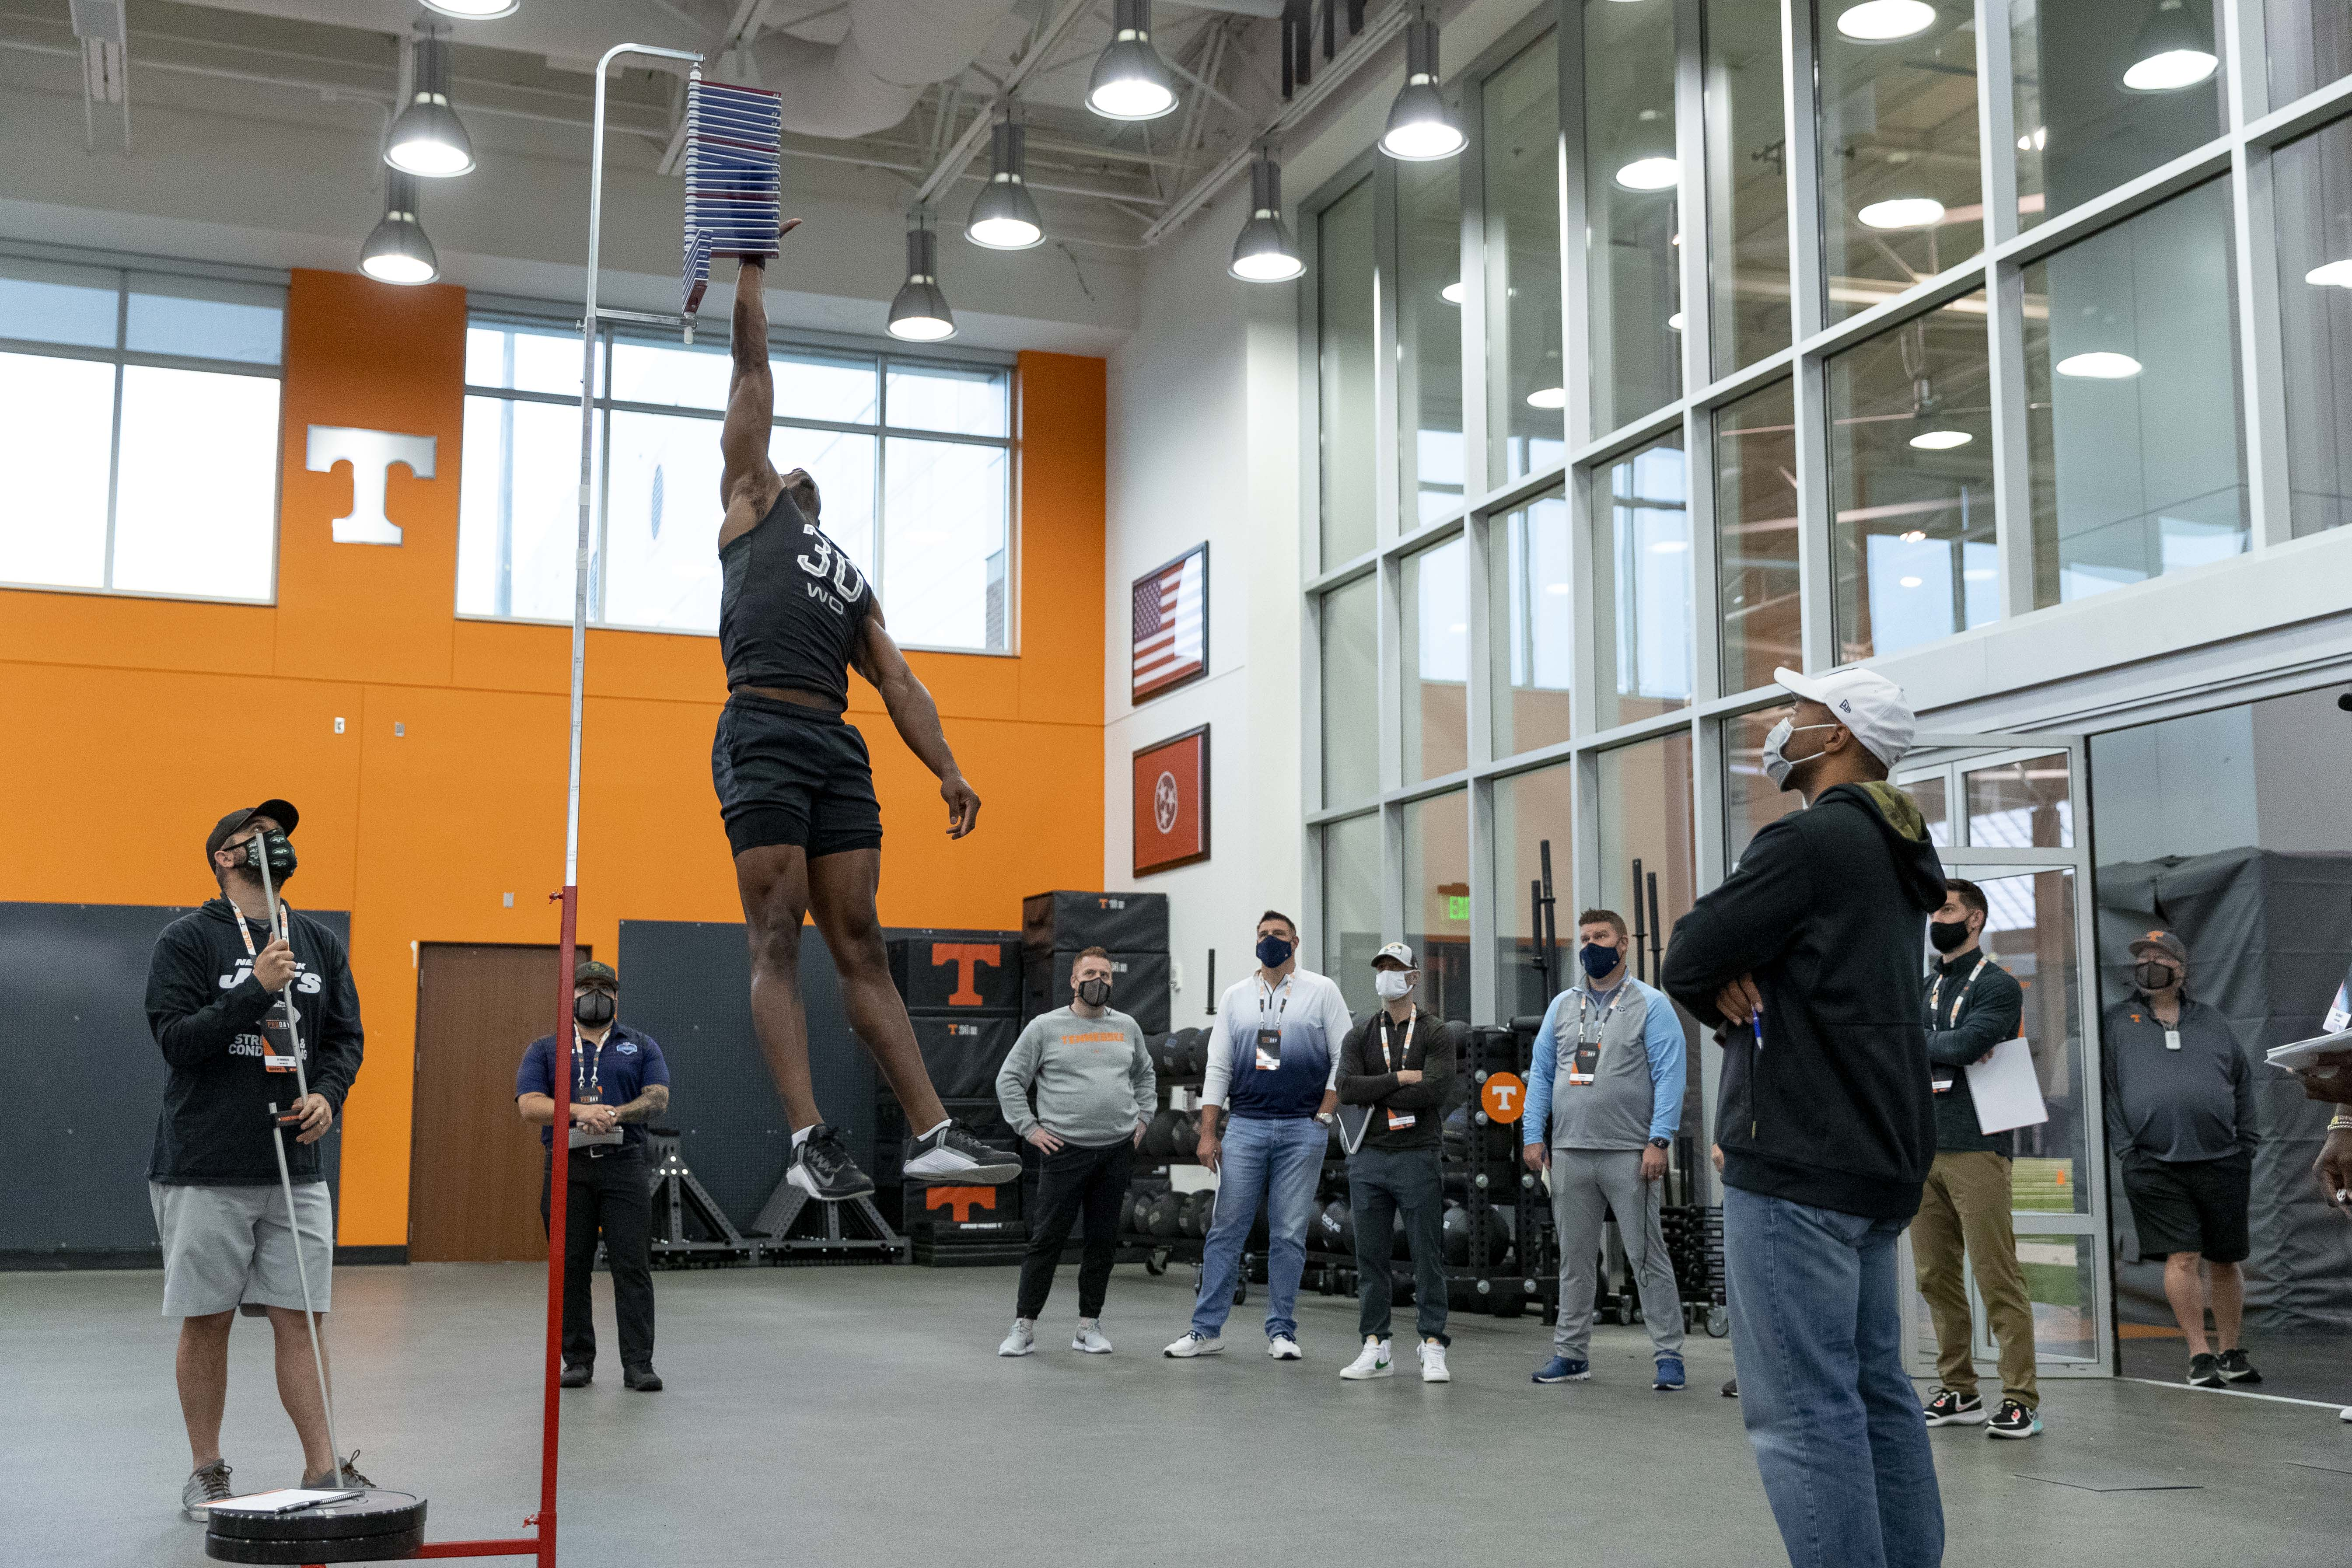 KNOXVILLE, TN - 2021.03.25 - 2021 Pro Day